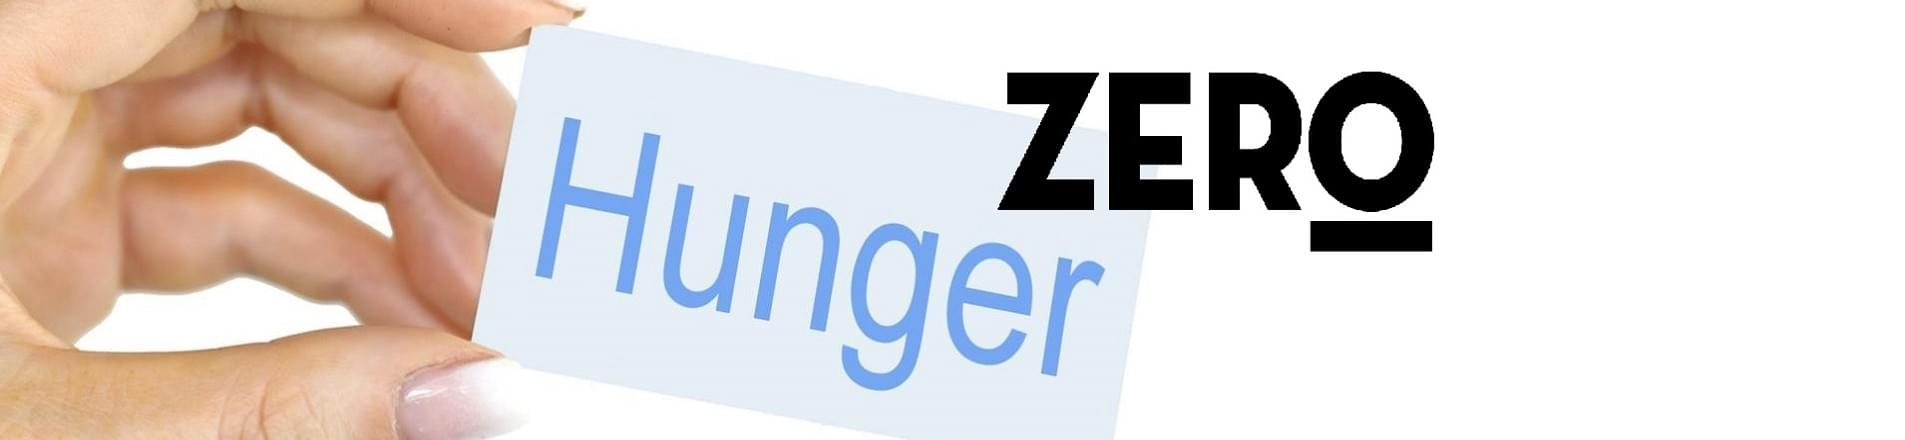 ITV launches appeal to achieve Zero Hunger goal